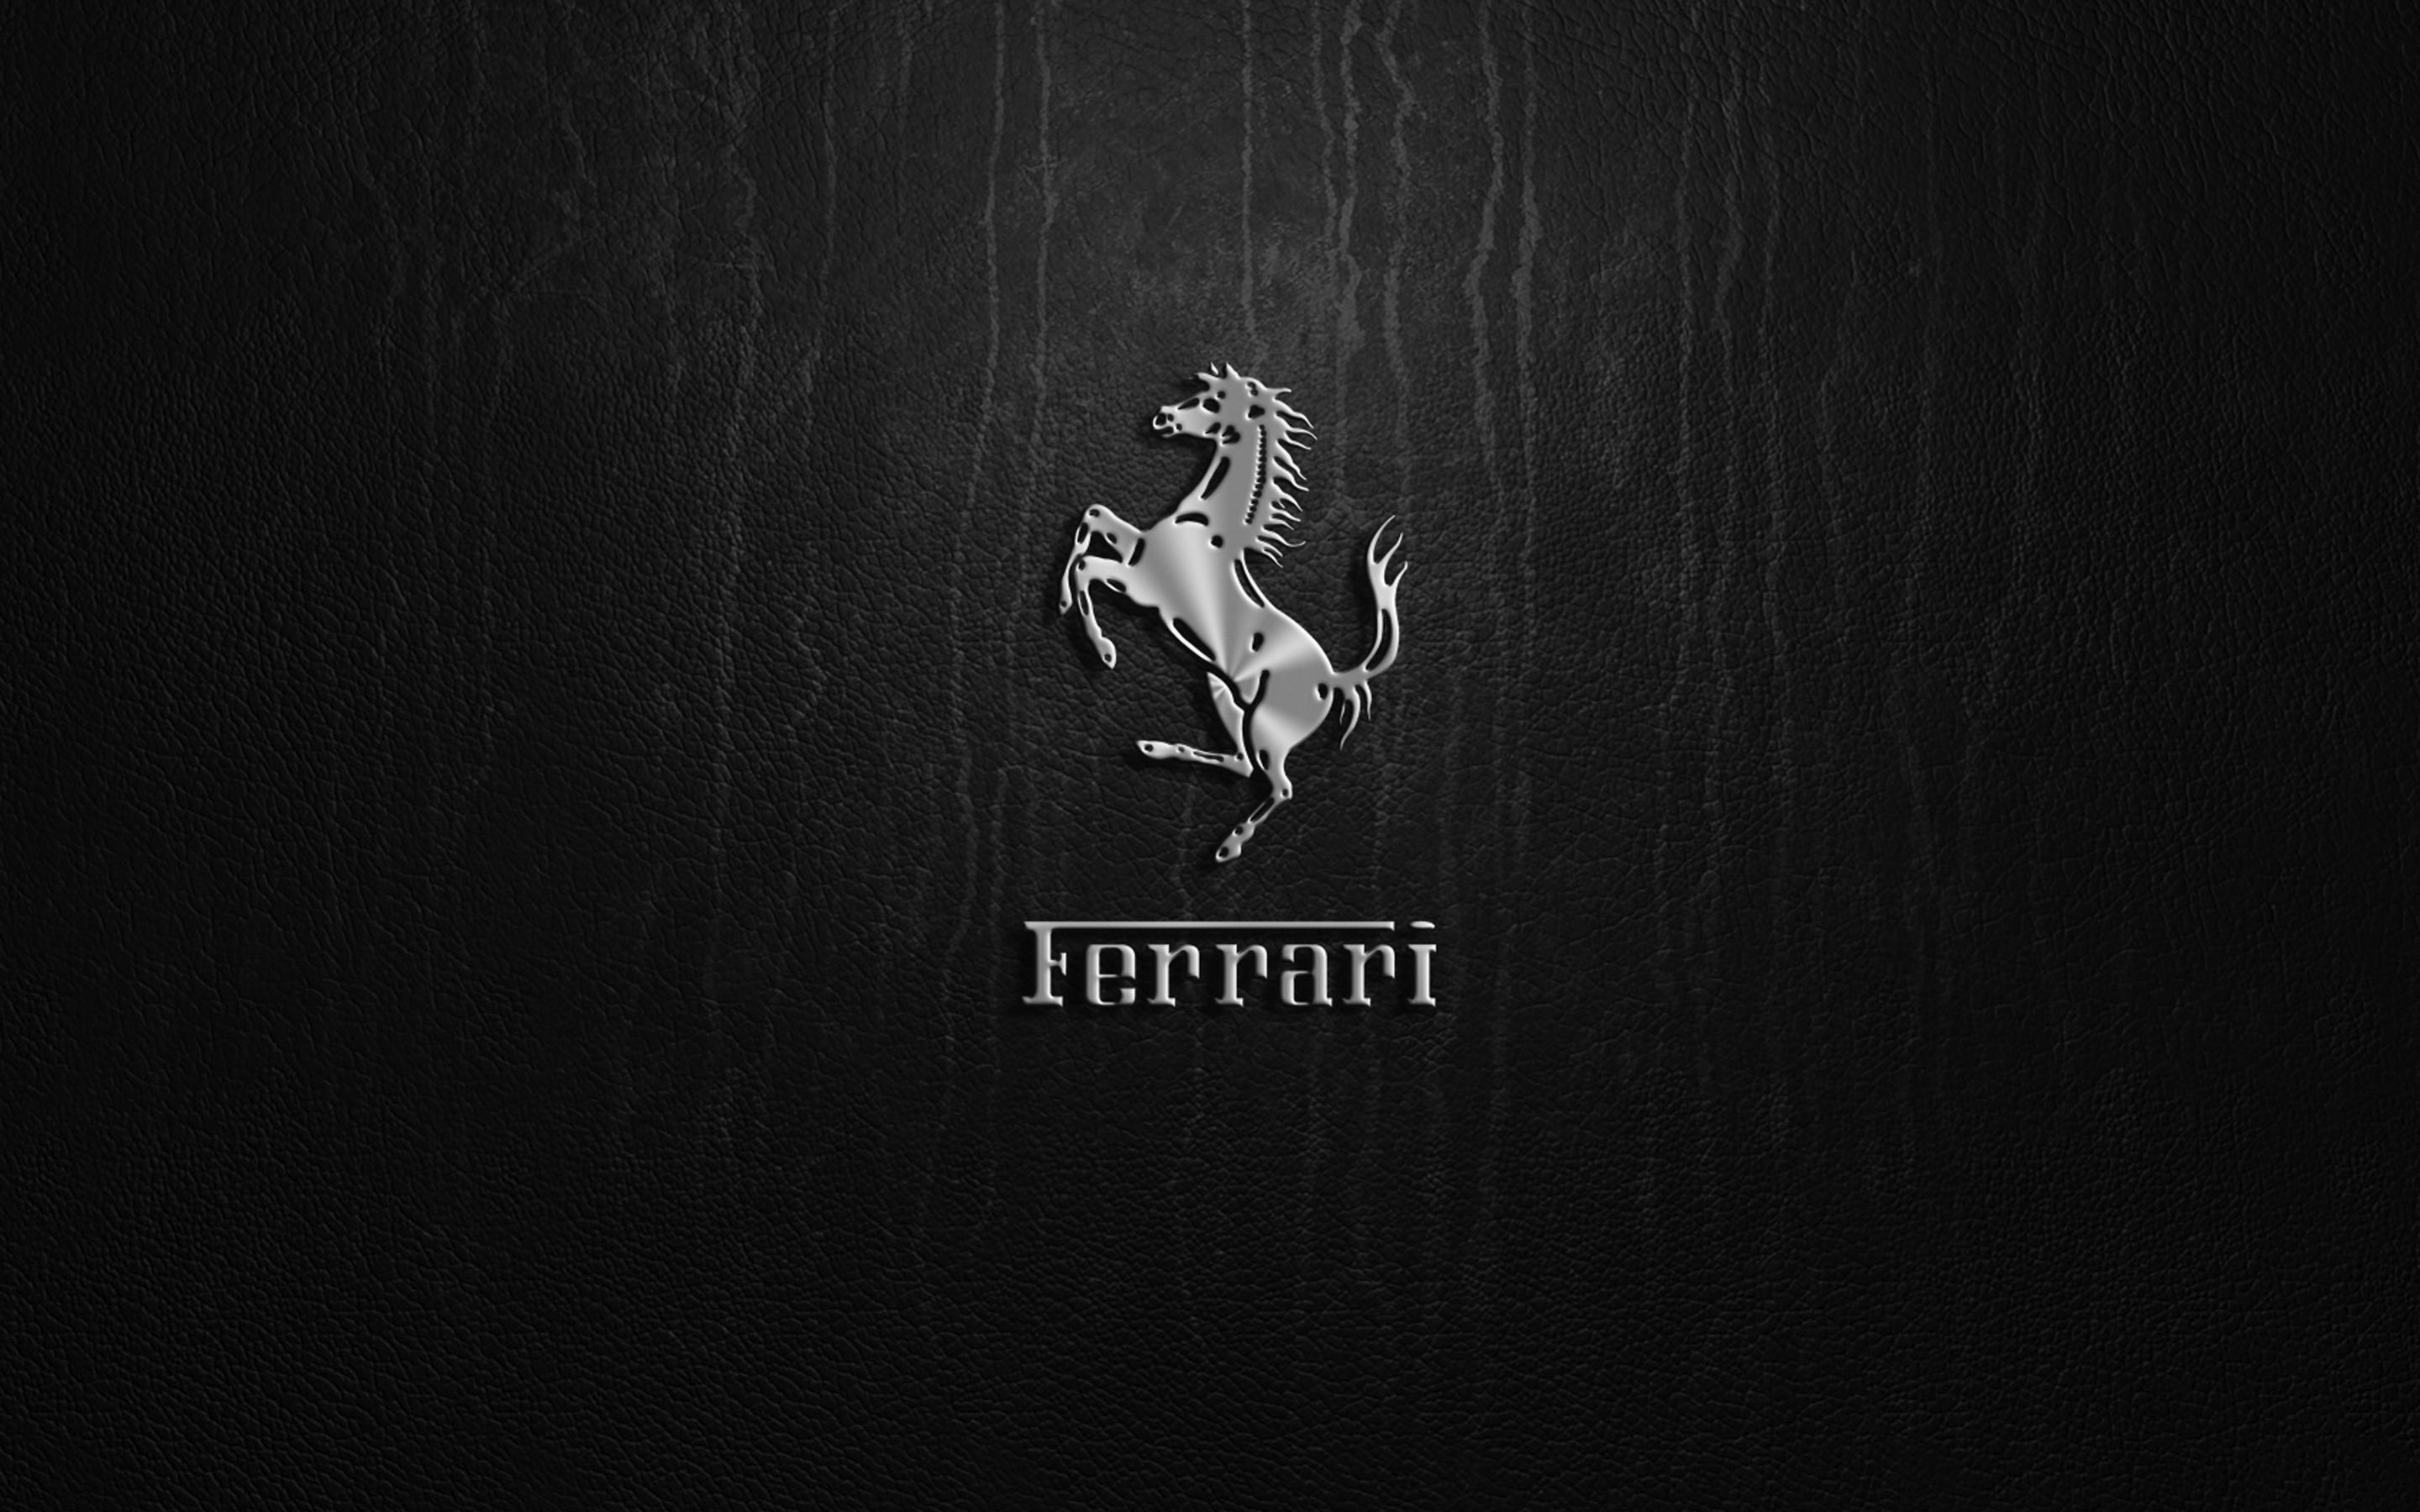 Ferrari Logo Wallpapers Wallpaper Cave Rh Wallpapercave Com Hd Of Car Logos